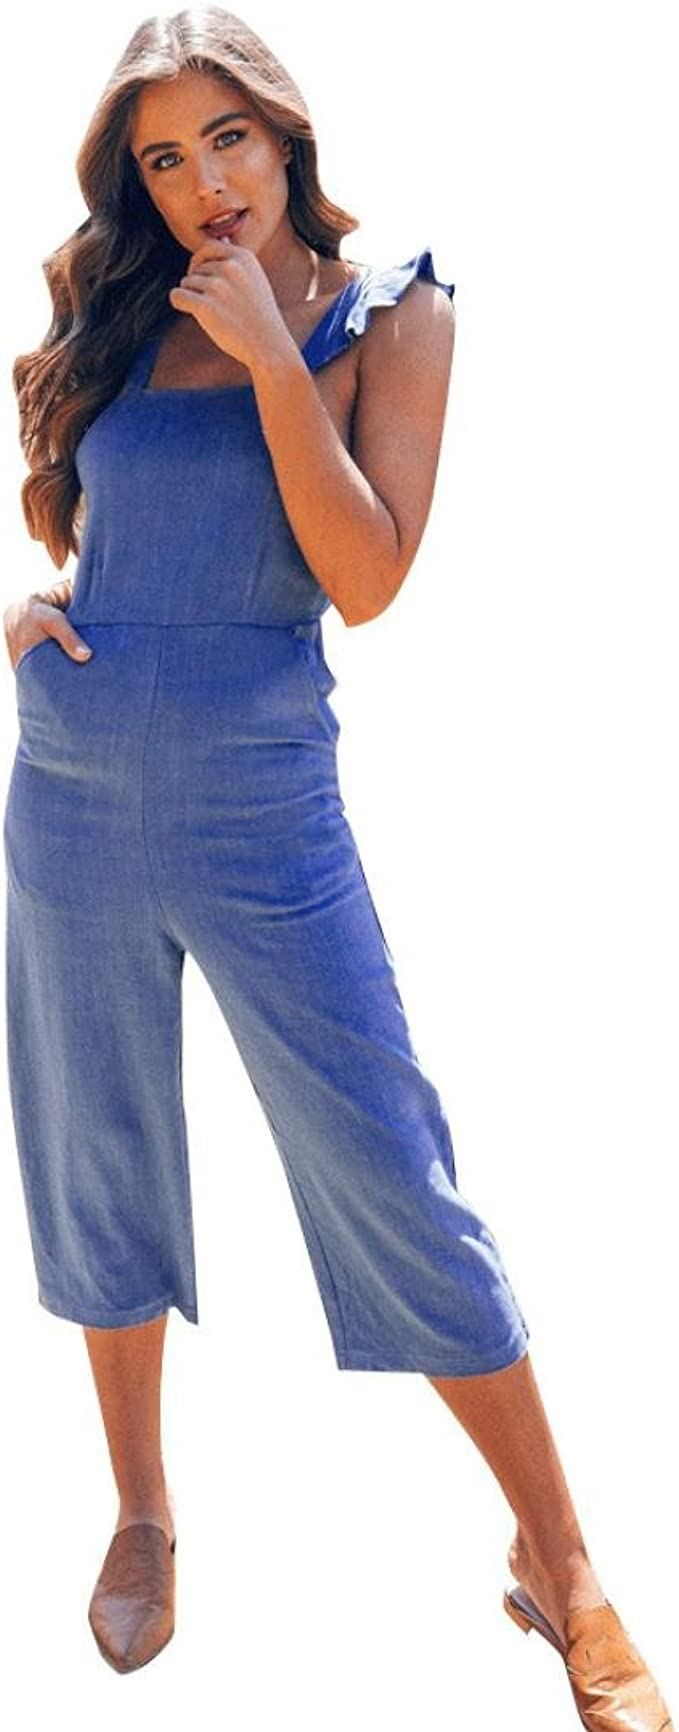 Eledobby Womens Casual Dungarees with Pockets Cotton Sleeveless Jumpsuits Ladies Lounge Wear Rompers Wide Legs Loose Playsuit Vintage Autumn Clothes